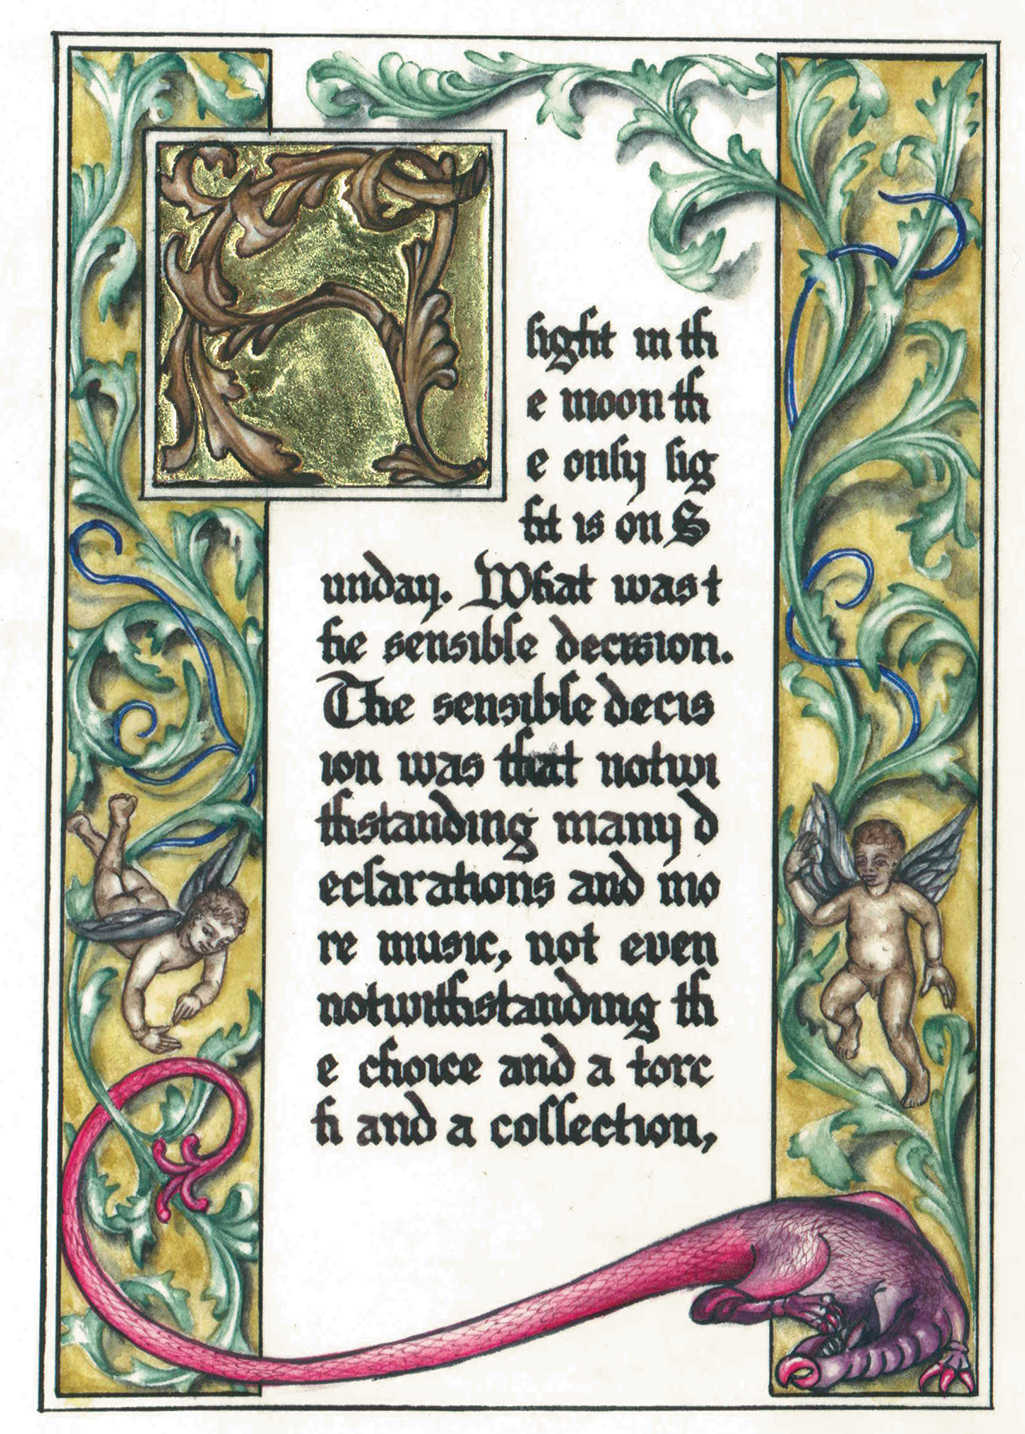 cathy weber - art - artmaker - watercolor - parchment- montana - Gertrude - stein - tender buttons - illumination - book - artist